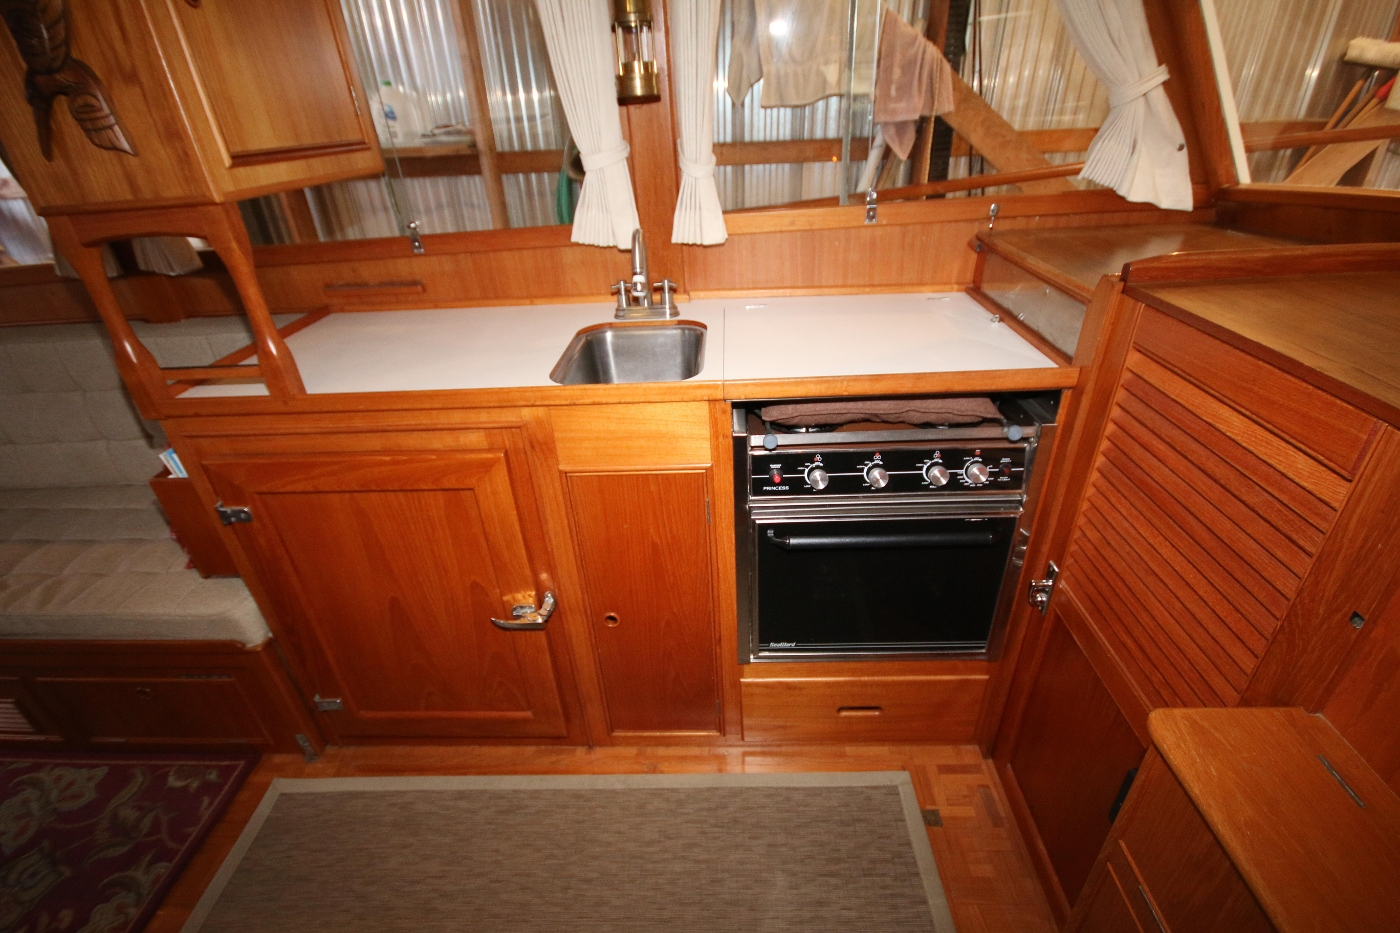 1988 Grand Banks 32, Galley Space to Portside